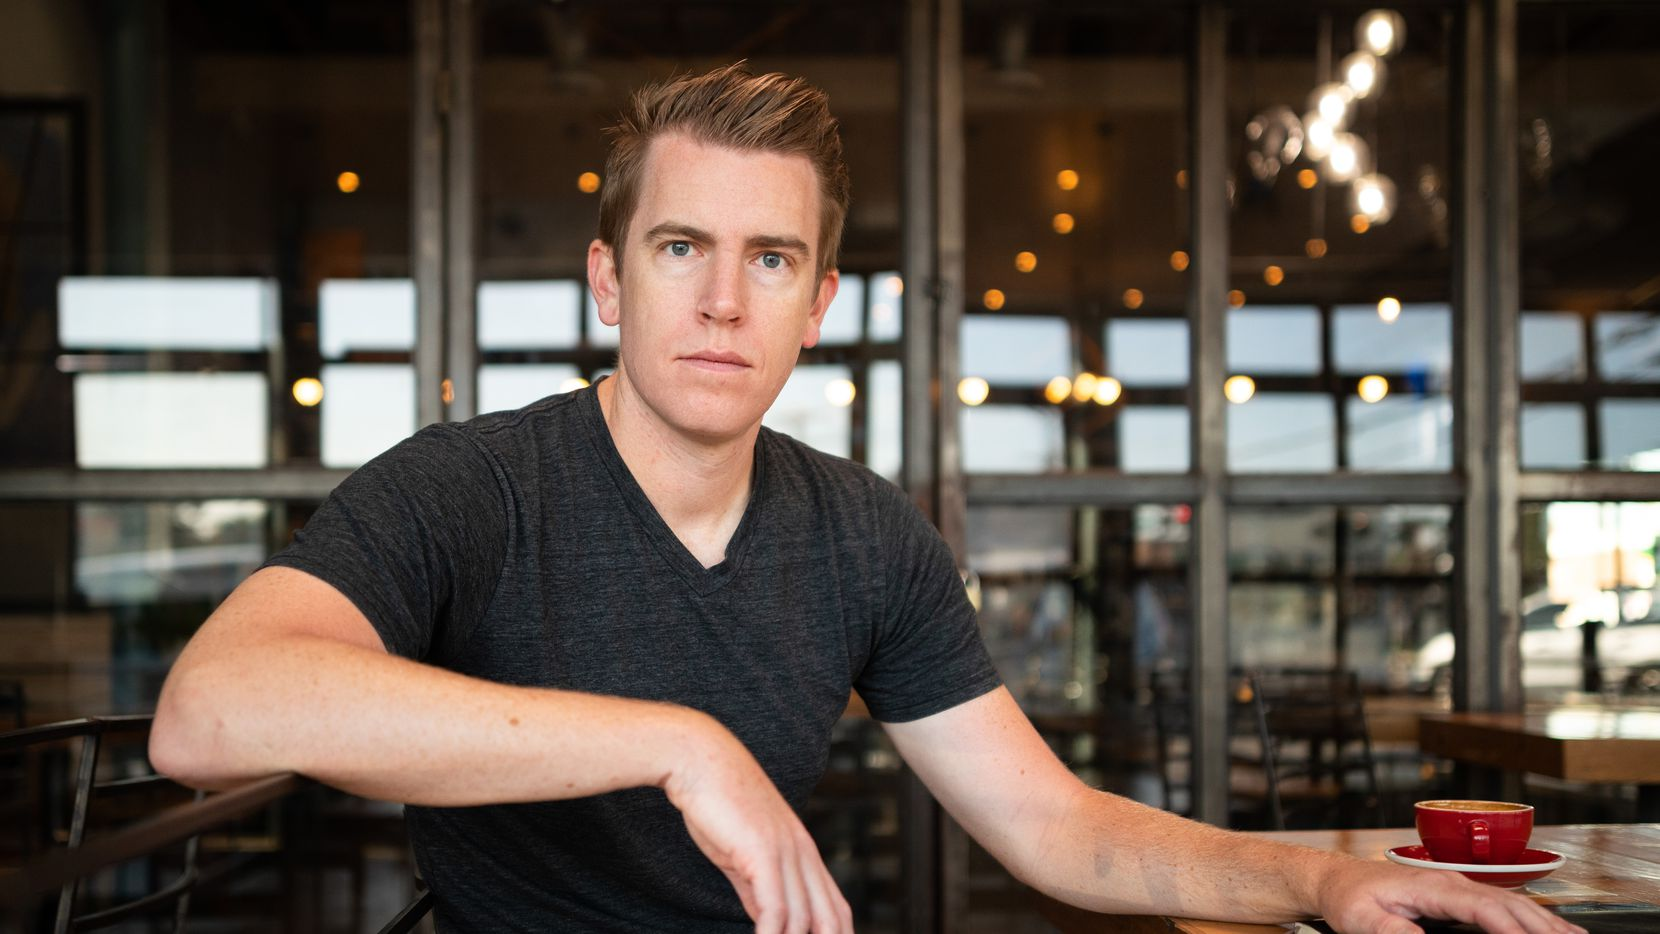 Author David McCloskey, 35, finished his first novel earlier this year titled, Damascus Station, he's shown at a coffee house in Dallas, on Monday, Sept. 20, 2021.